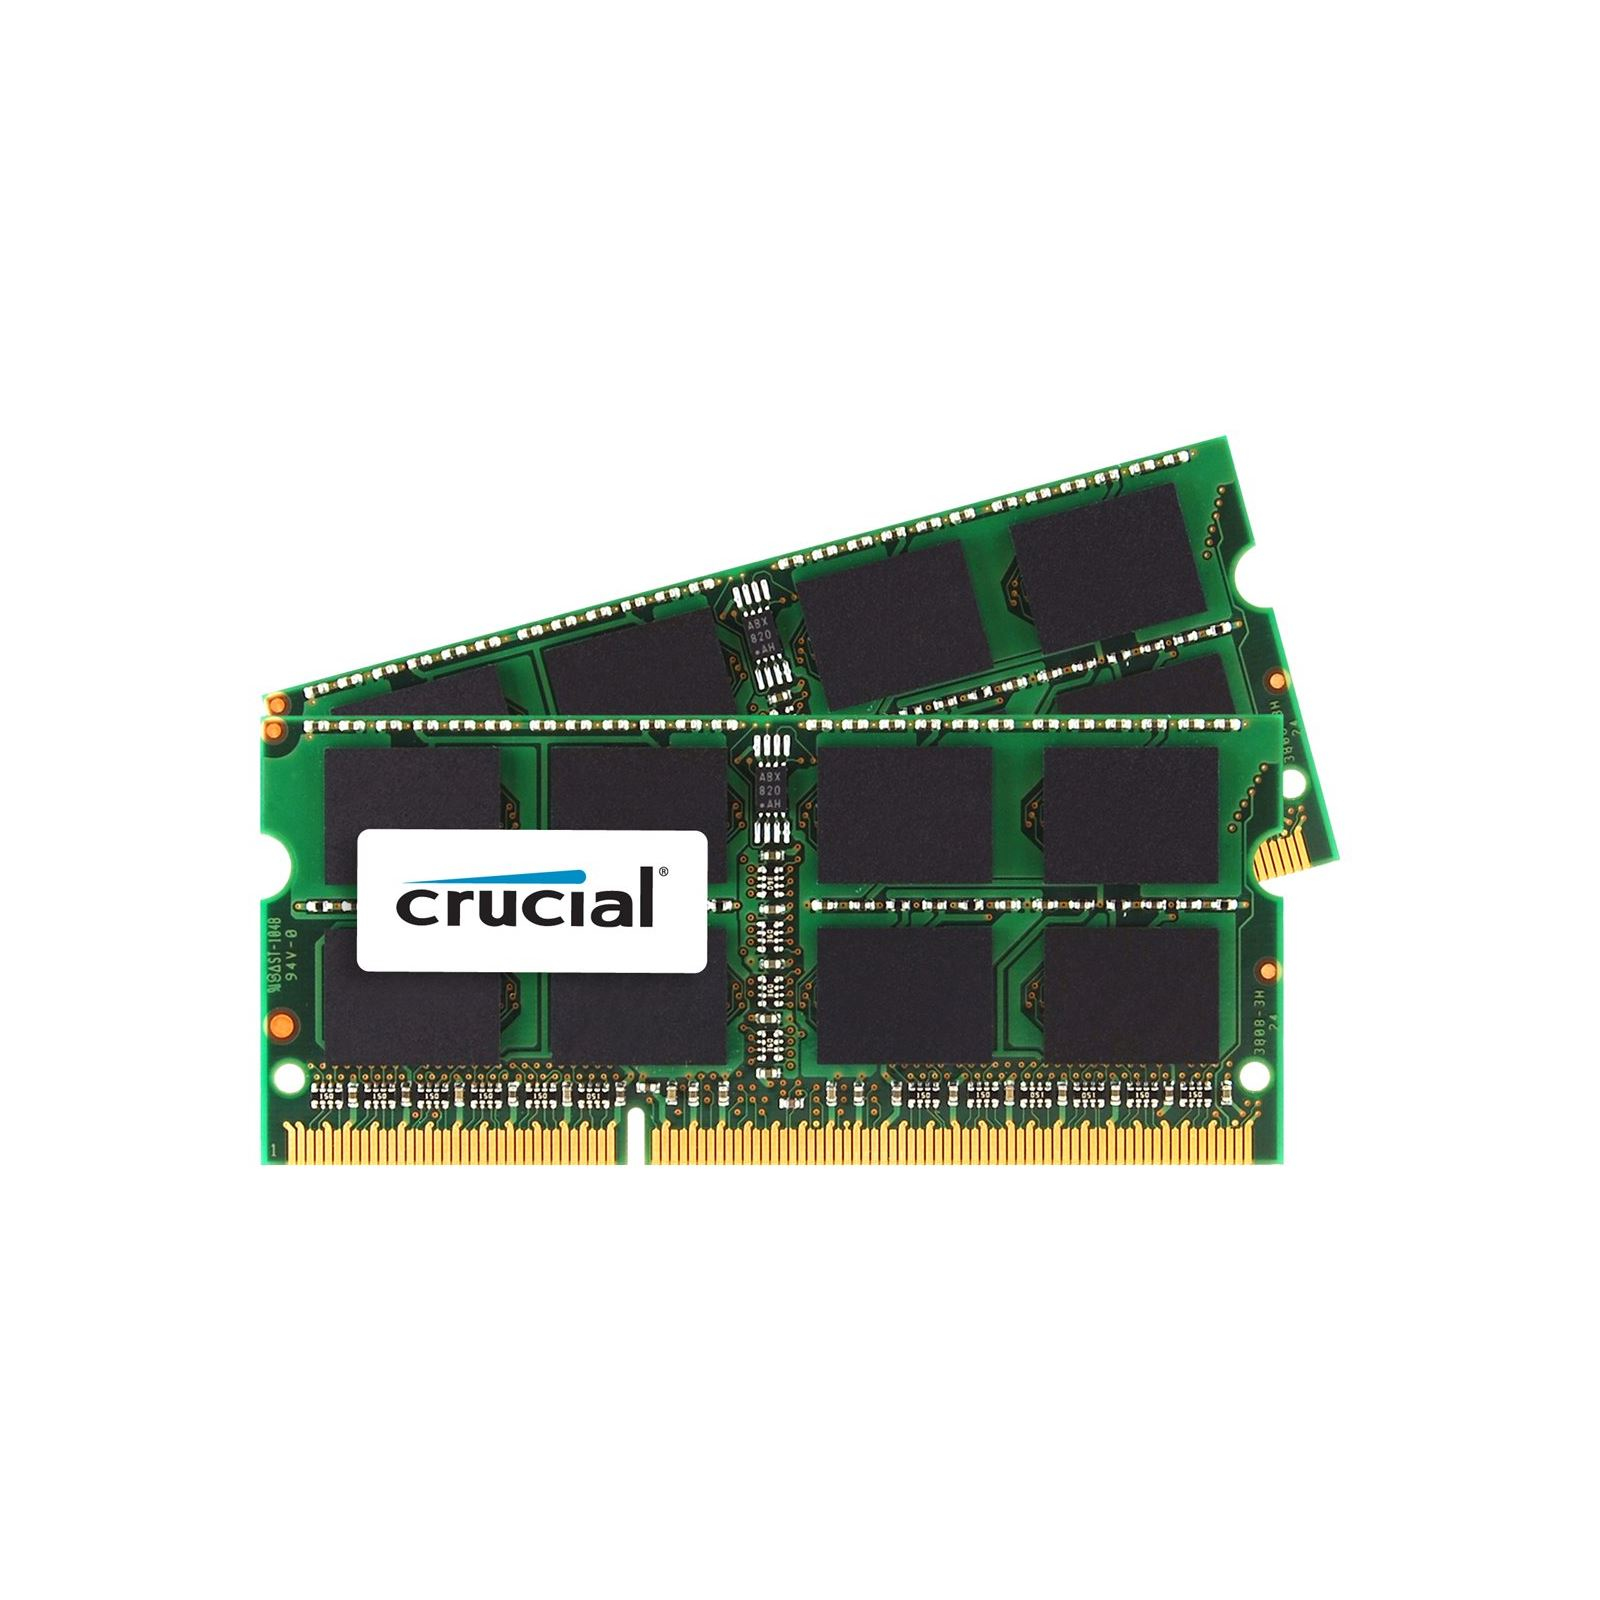 Crucial 16GB (2x8GB) DDR3-1600 SO-DIMM CL11 16GB DDR3 1600MHz memory module